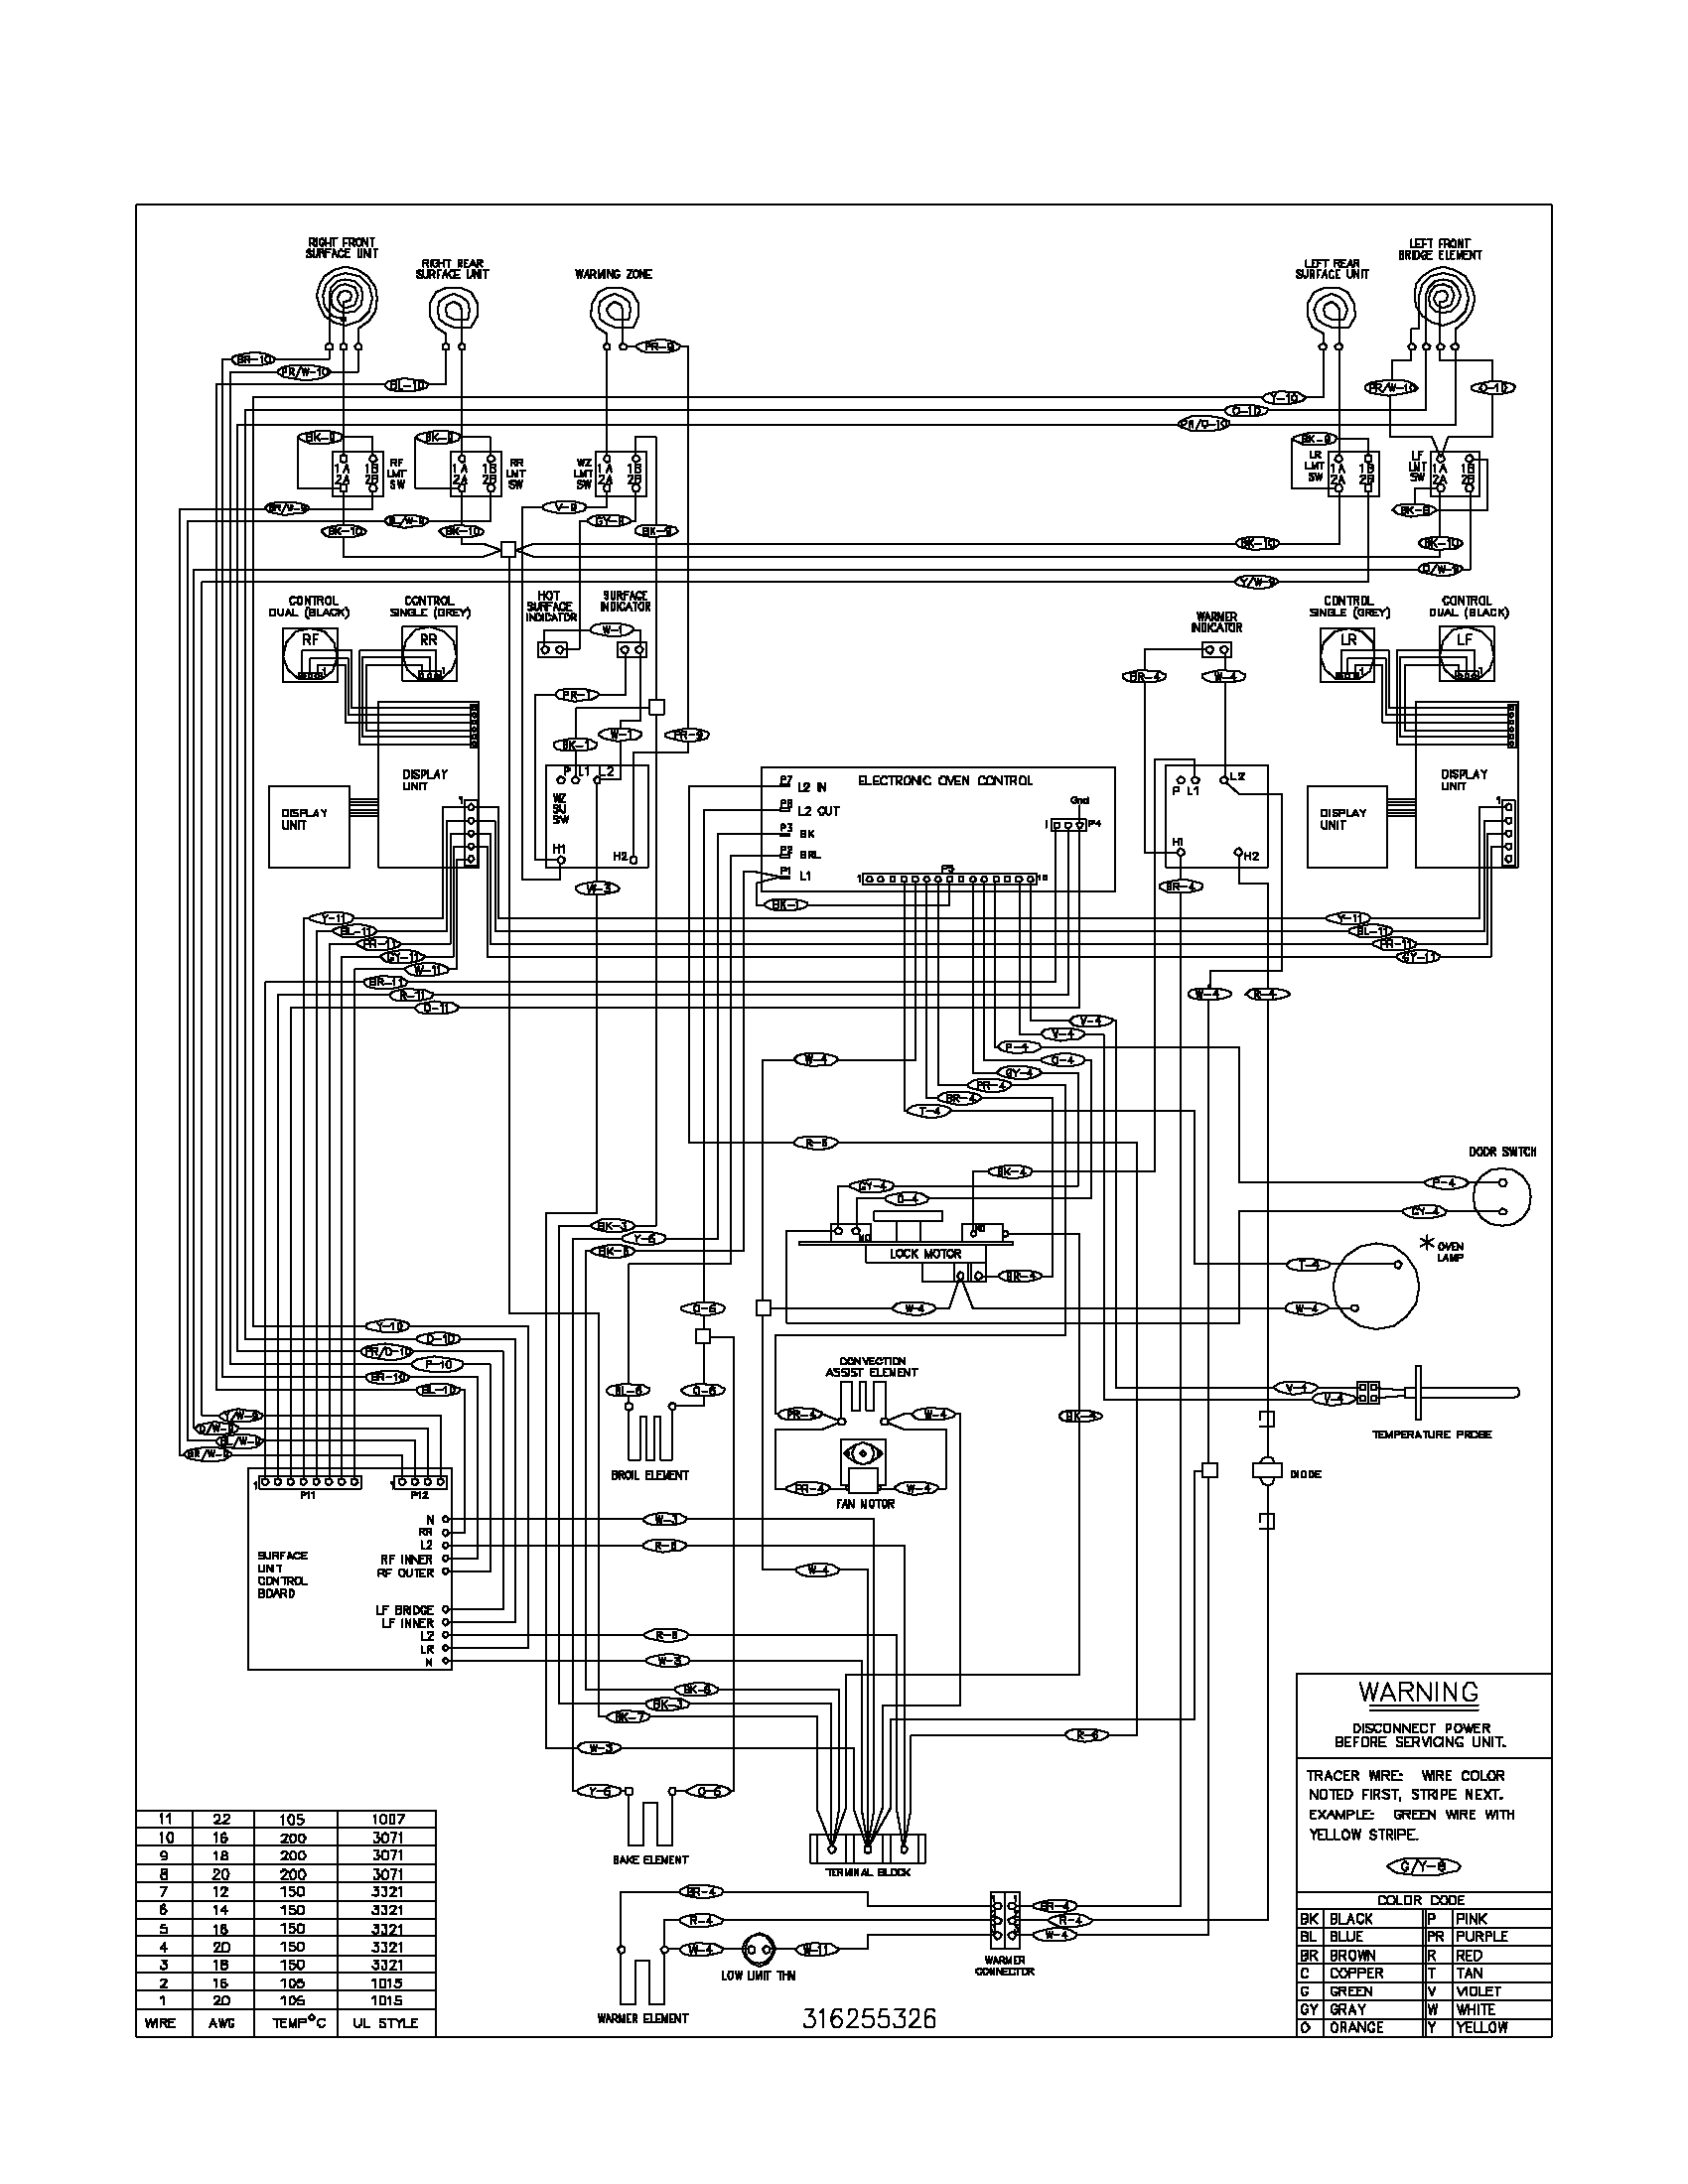 old mobile home wiring diagrams with Nordyne E2eb 015hb Thermostat Wiring Diagram on Message Delete besides Kimpex 01 143 40 Cdi Bvox Wireing Diagram in addition Electrical Service in addition Brentwood Mobile Home Wiring Diagram likewise docstoc.